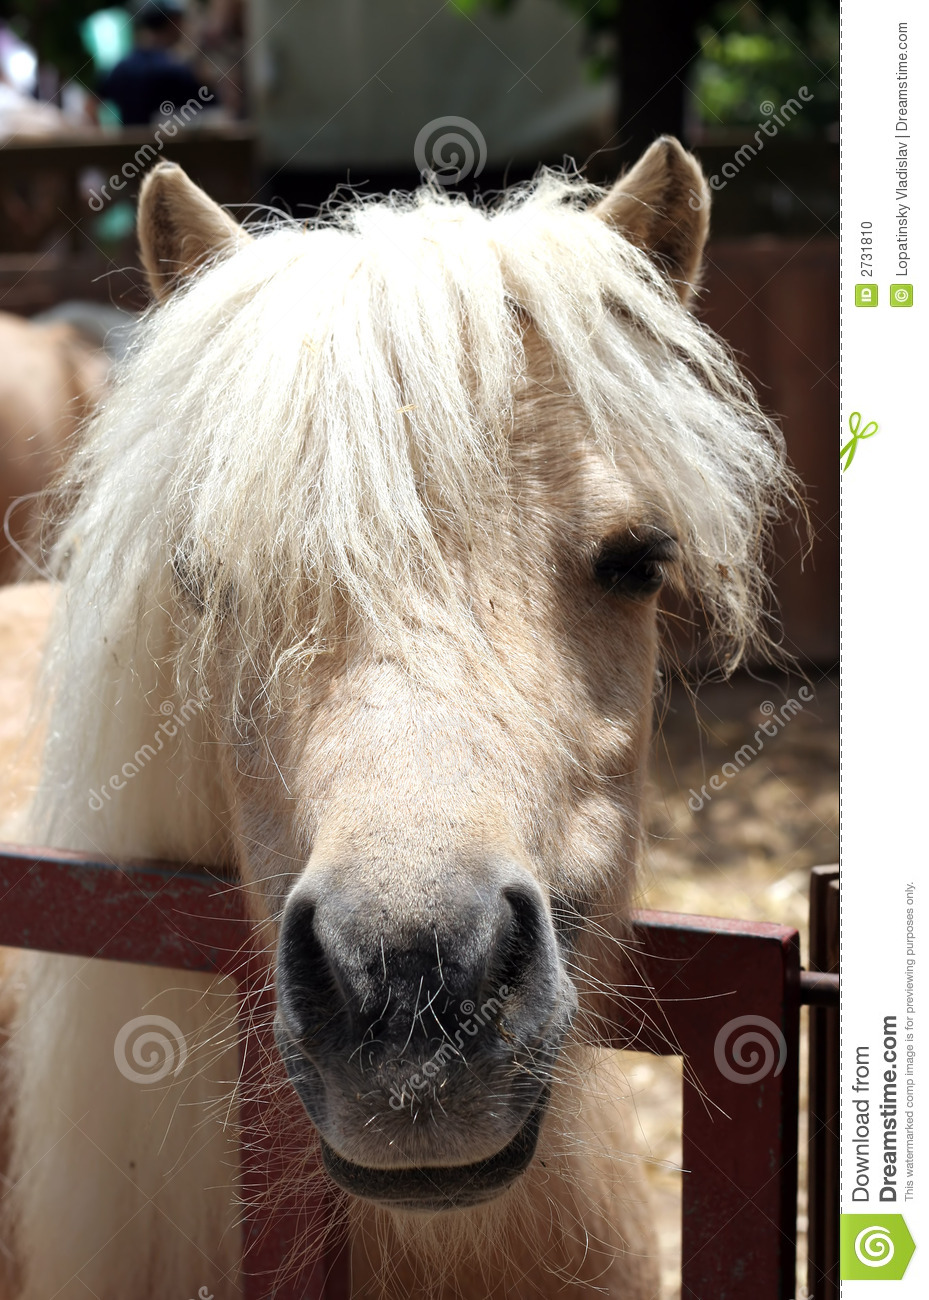 Head pony funny hairstyle stock photo. Image of mare ...